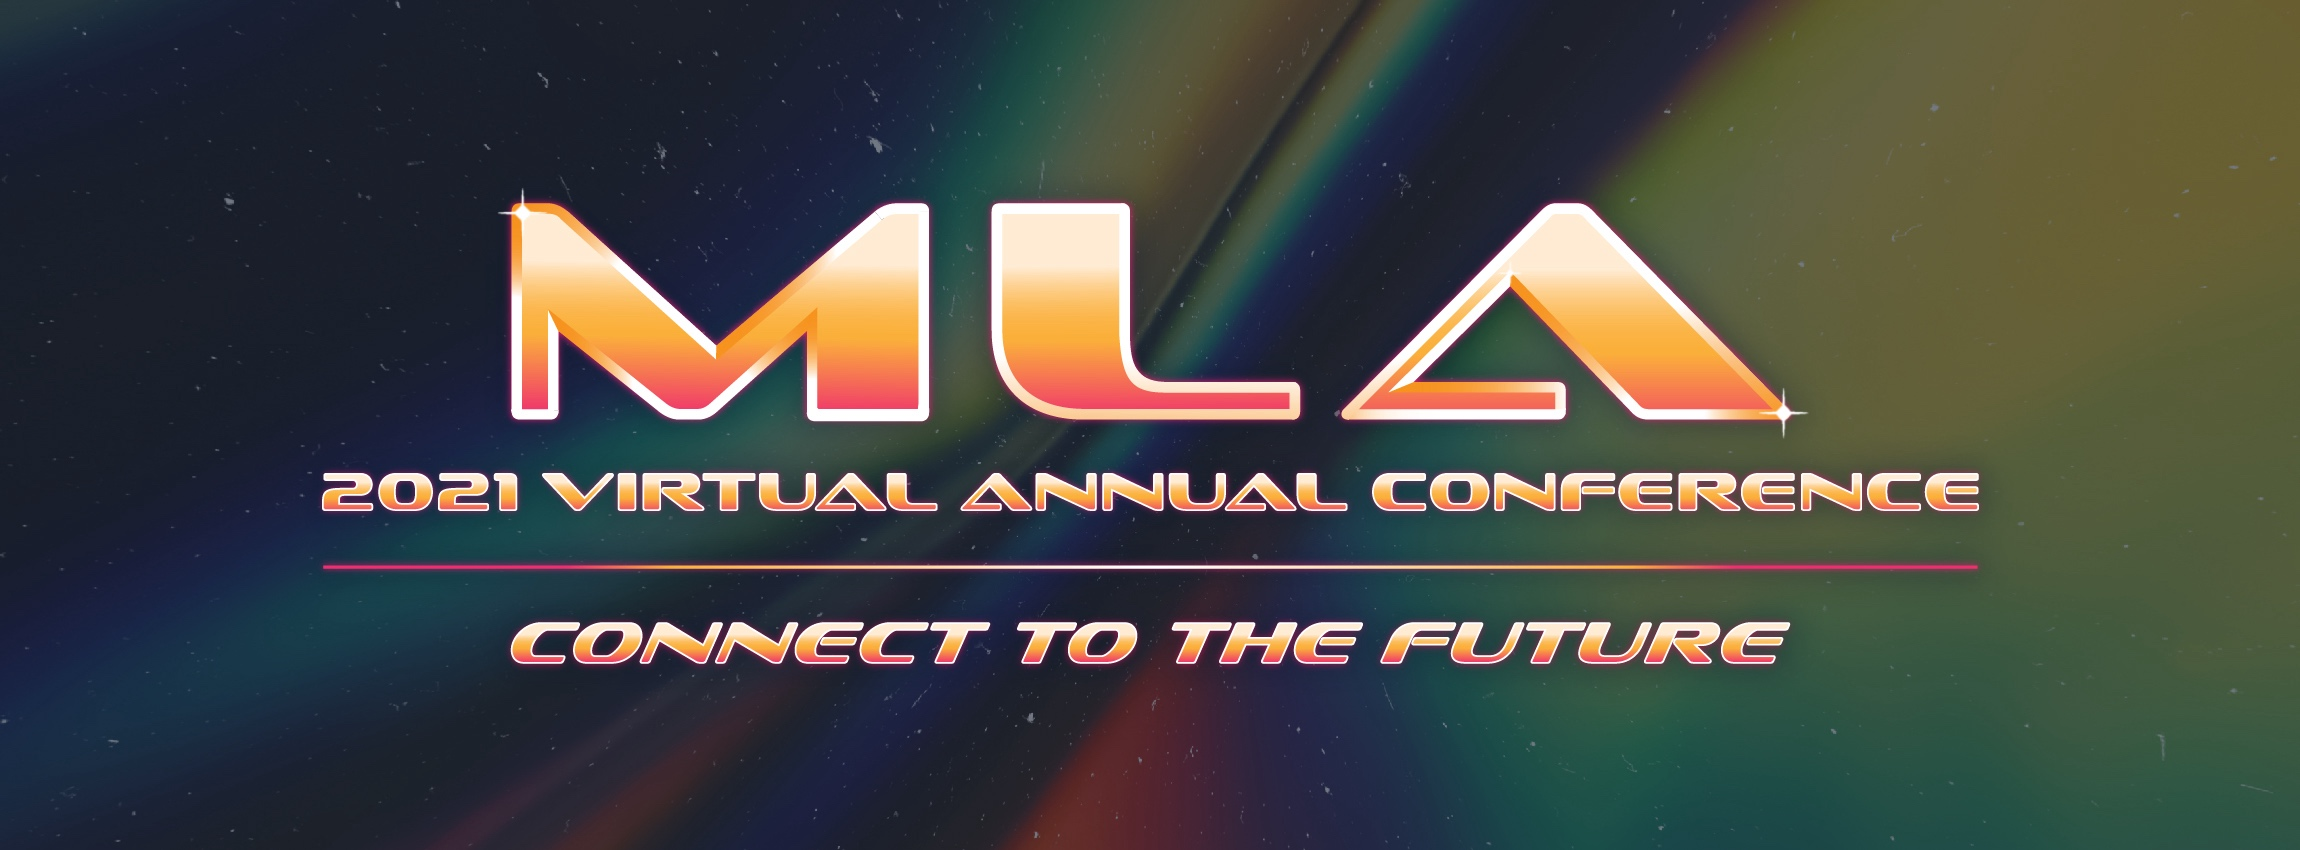 Text logo that says MLA 2021 Virtual Annual Conference Connect to the future